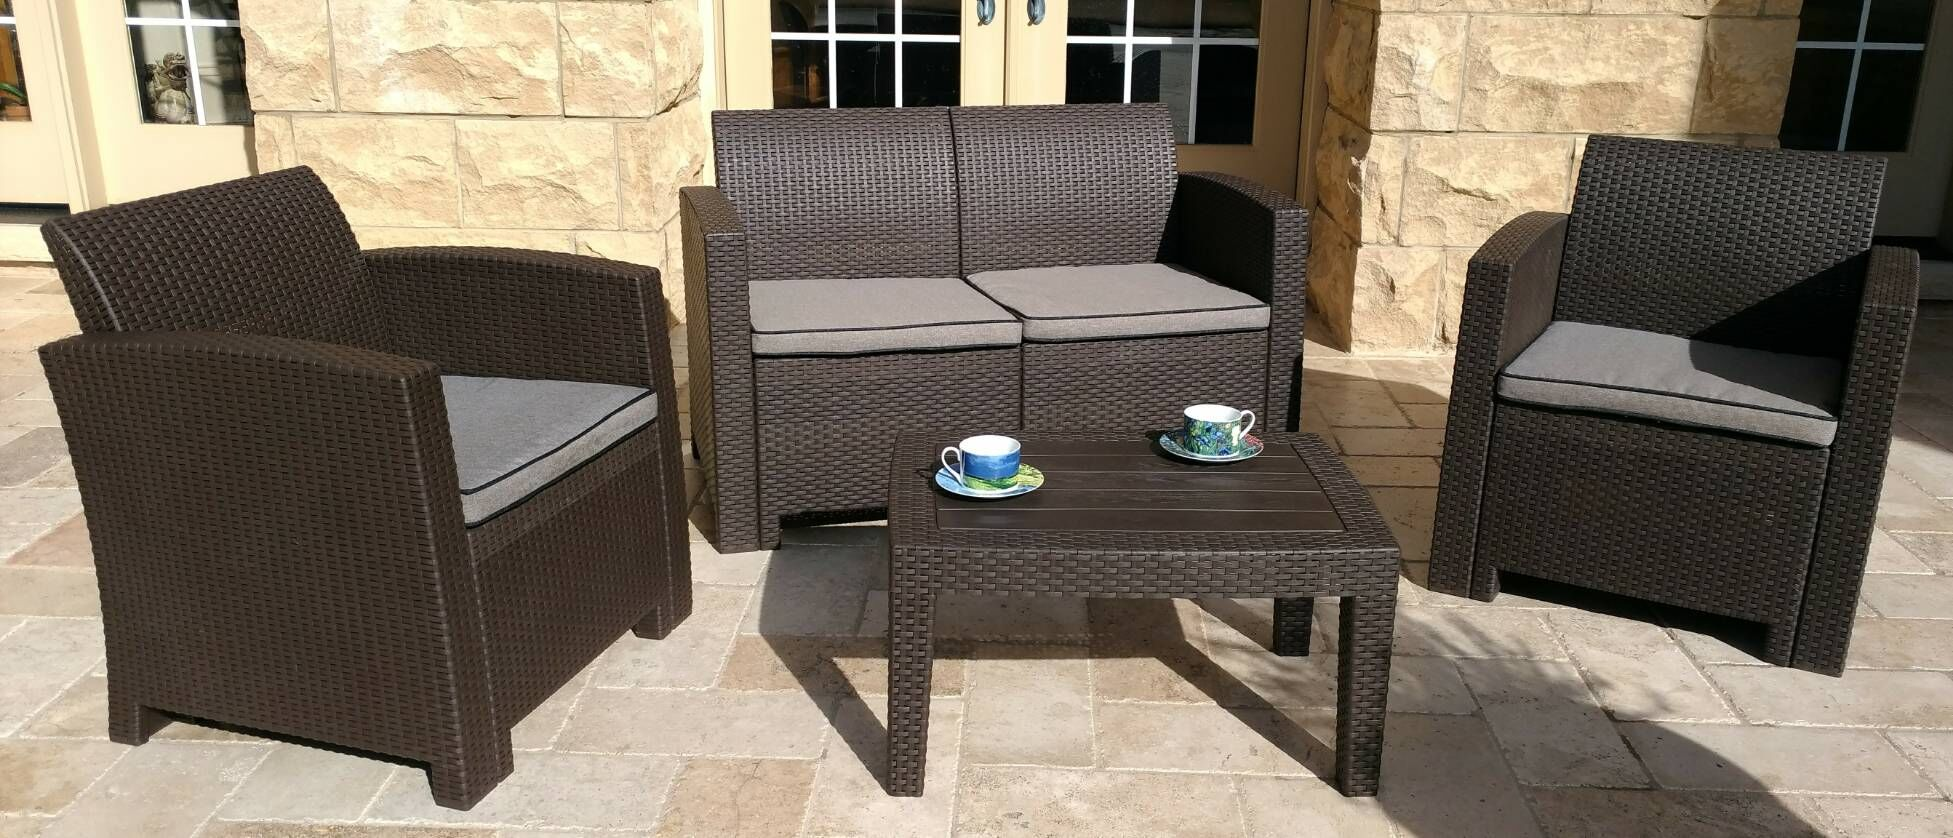 Pelletier 4 Piece Sofa Set with Cushions Frame Color: Brown